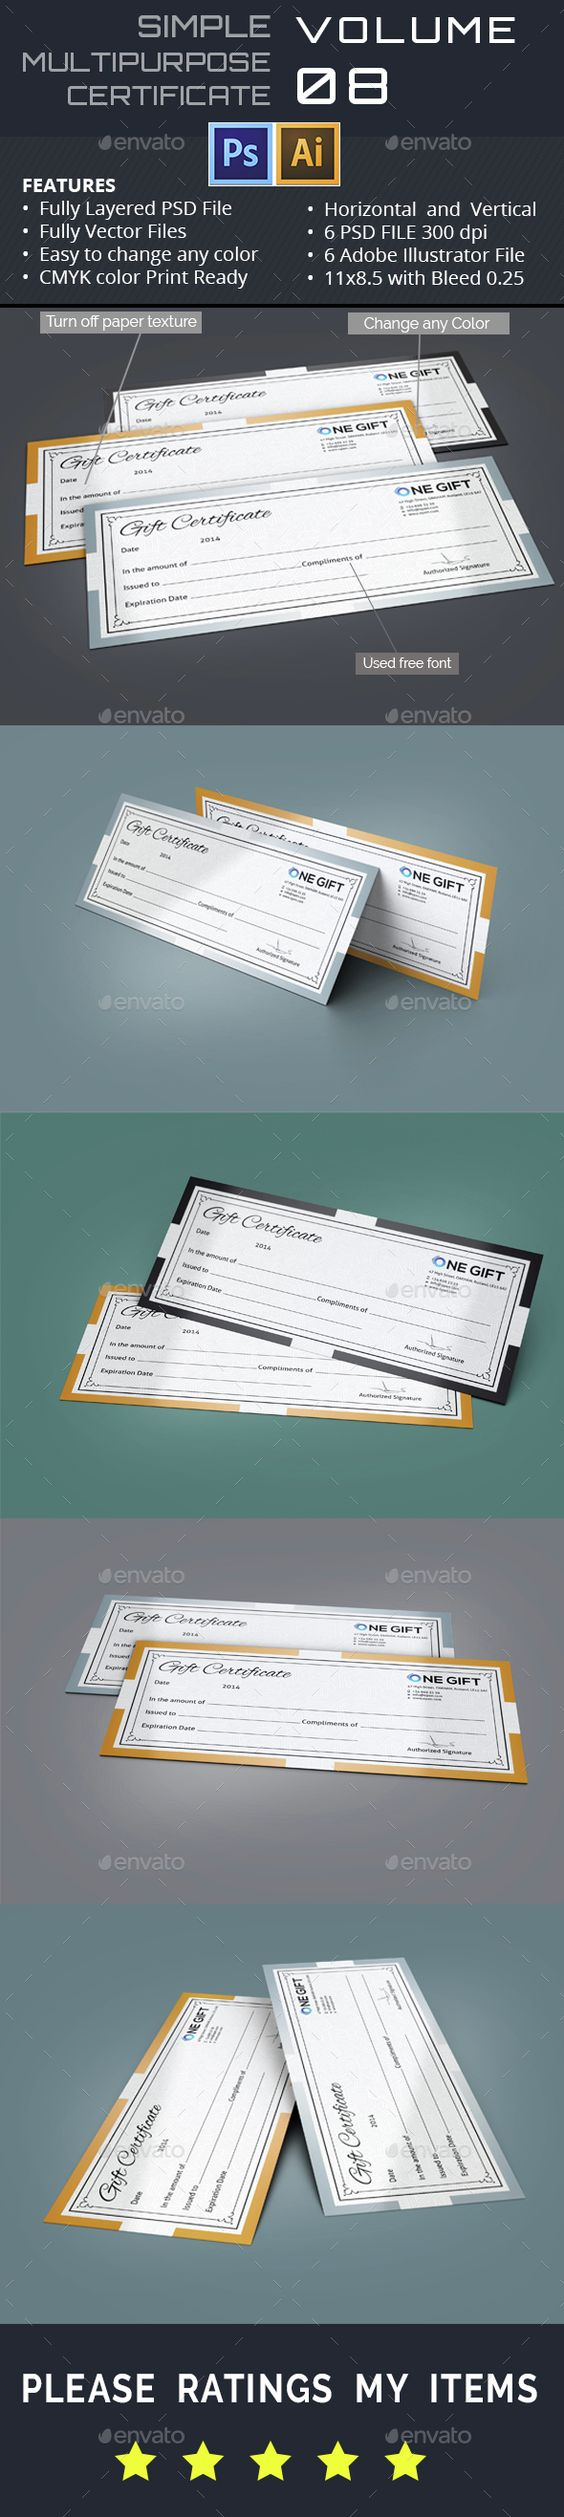 simple gift certificate gd simple gift certificates and simple gift certificate gd008 psd template only available here 10141